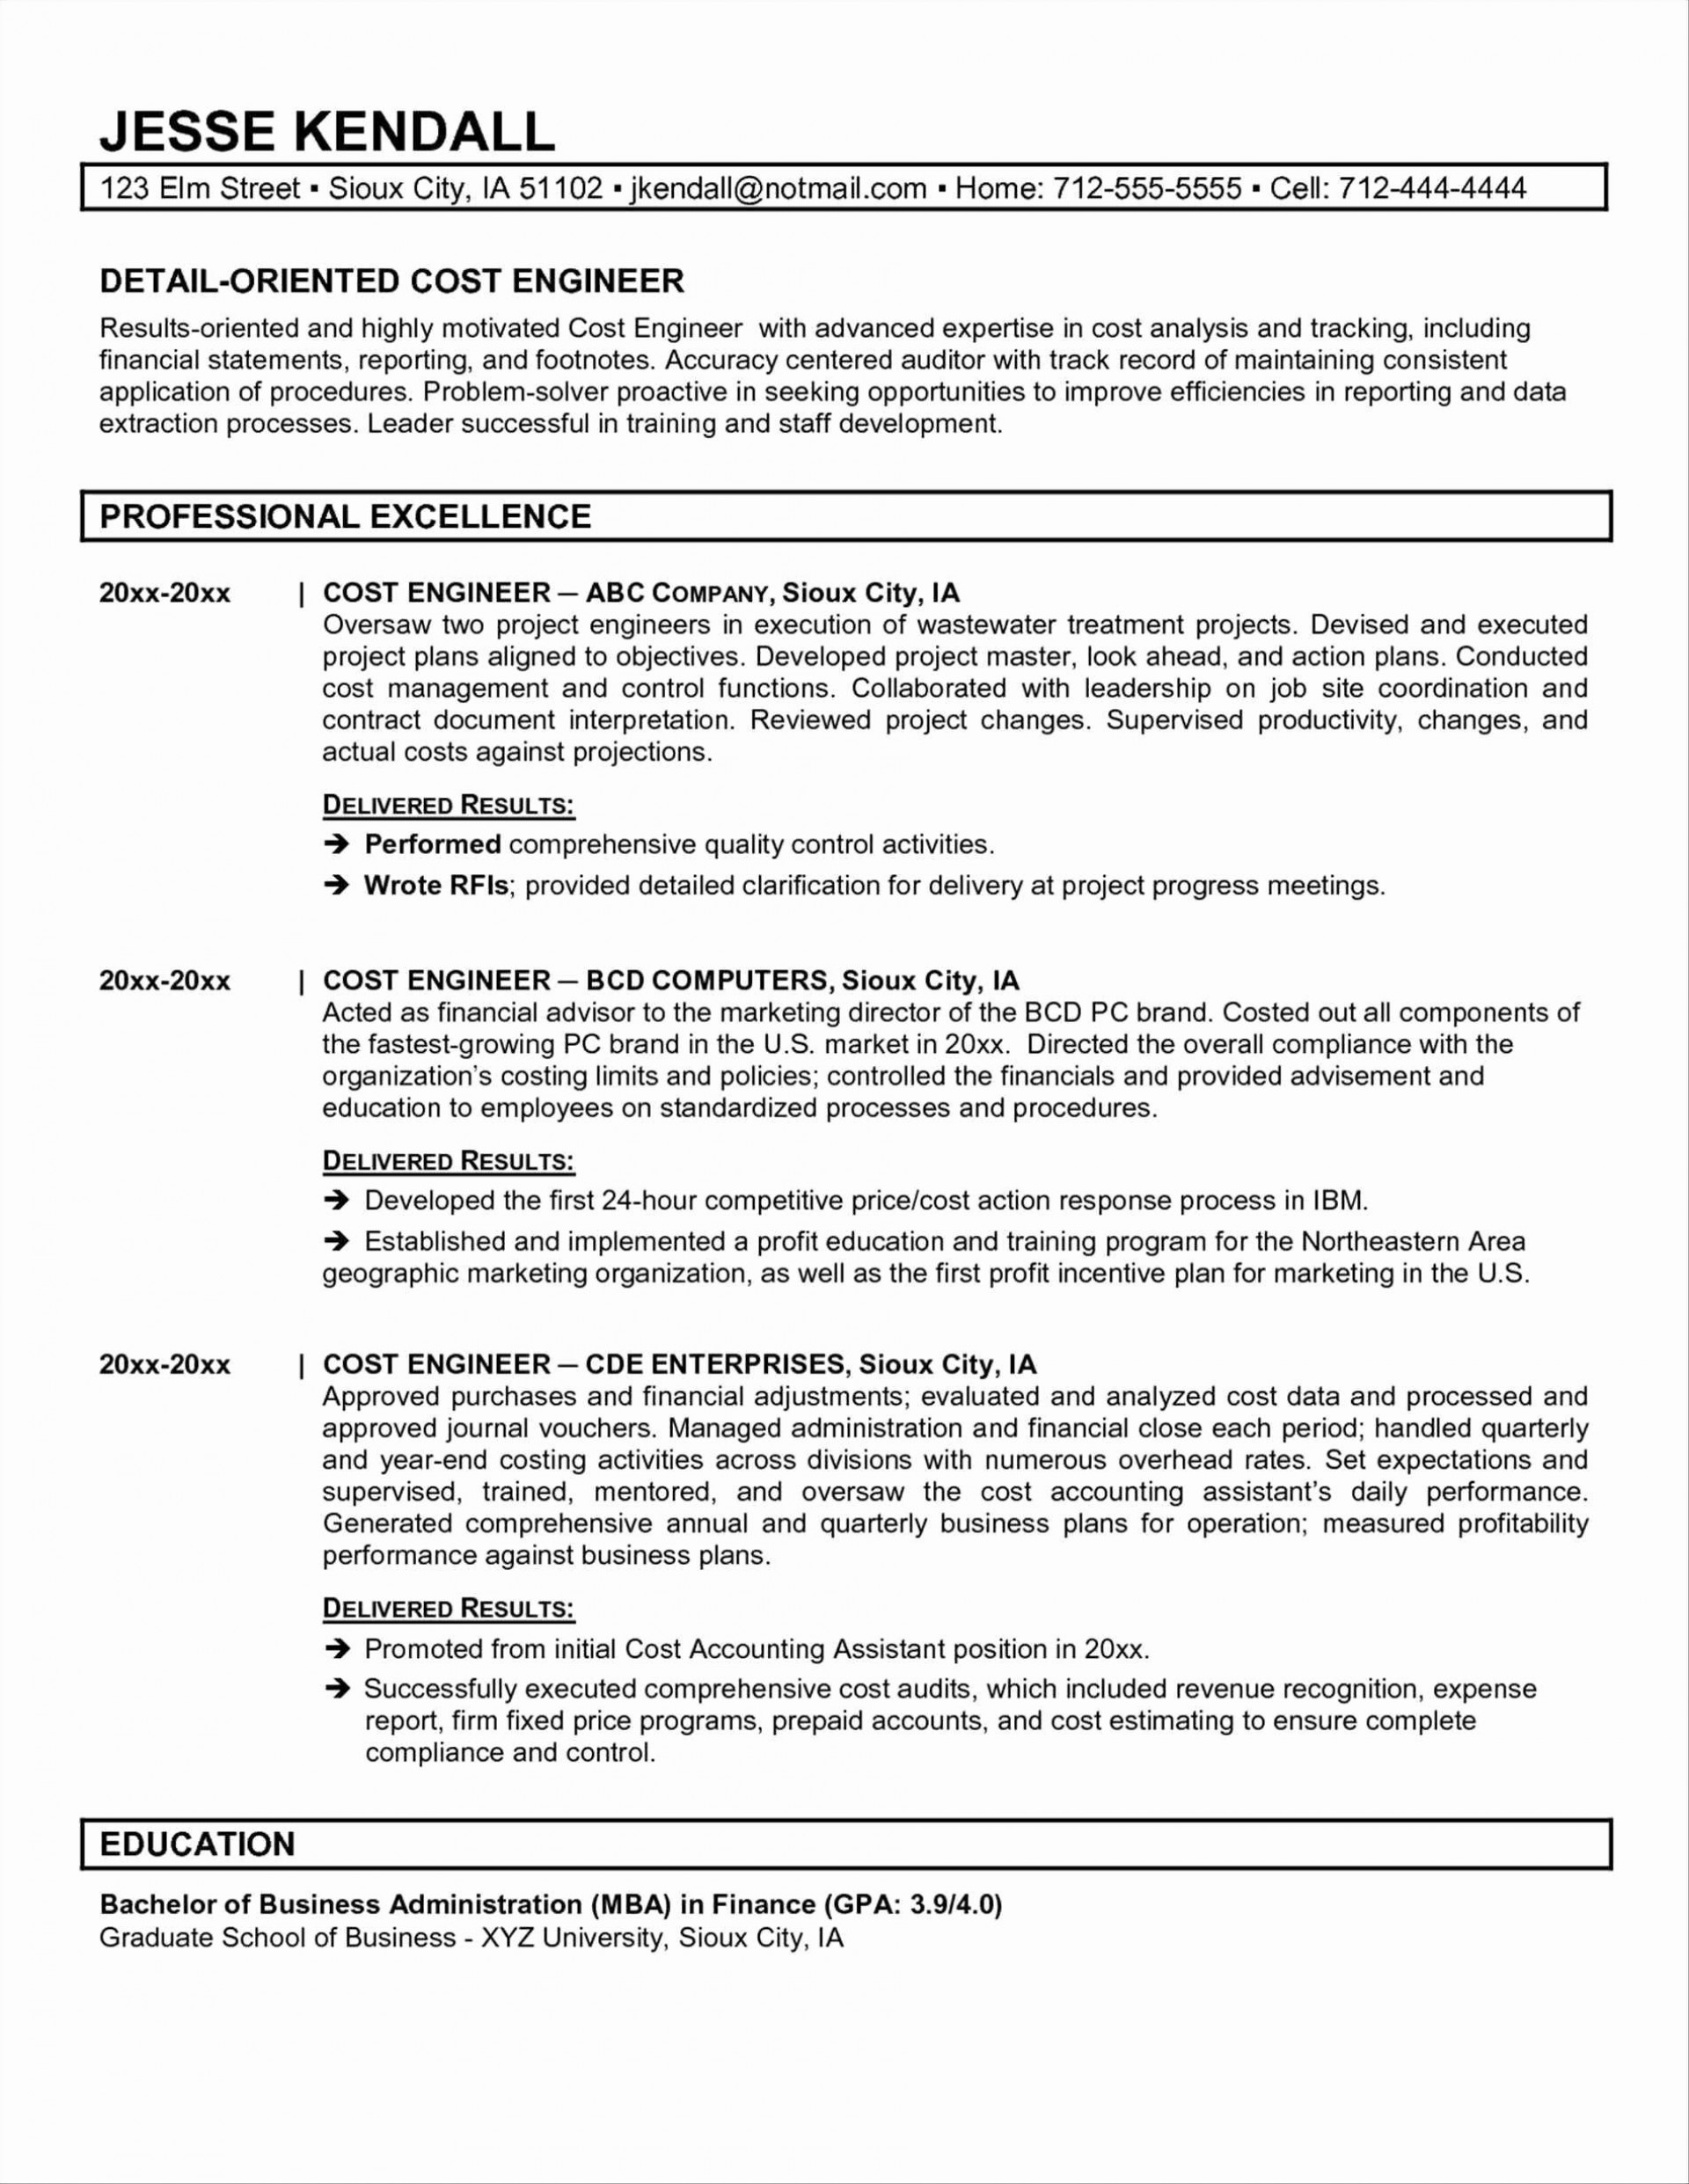 001 Fearsome Professional Development Plan Template For Engineer High Def  Engineers Goal Example1920